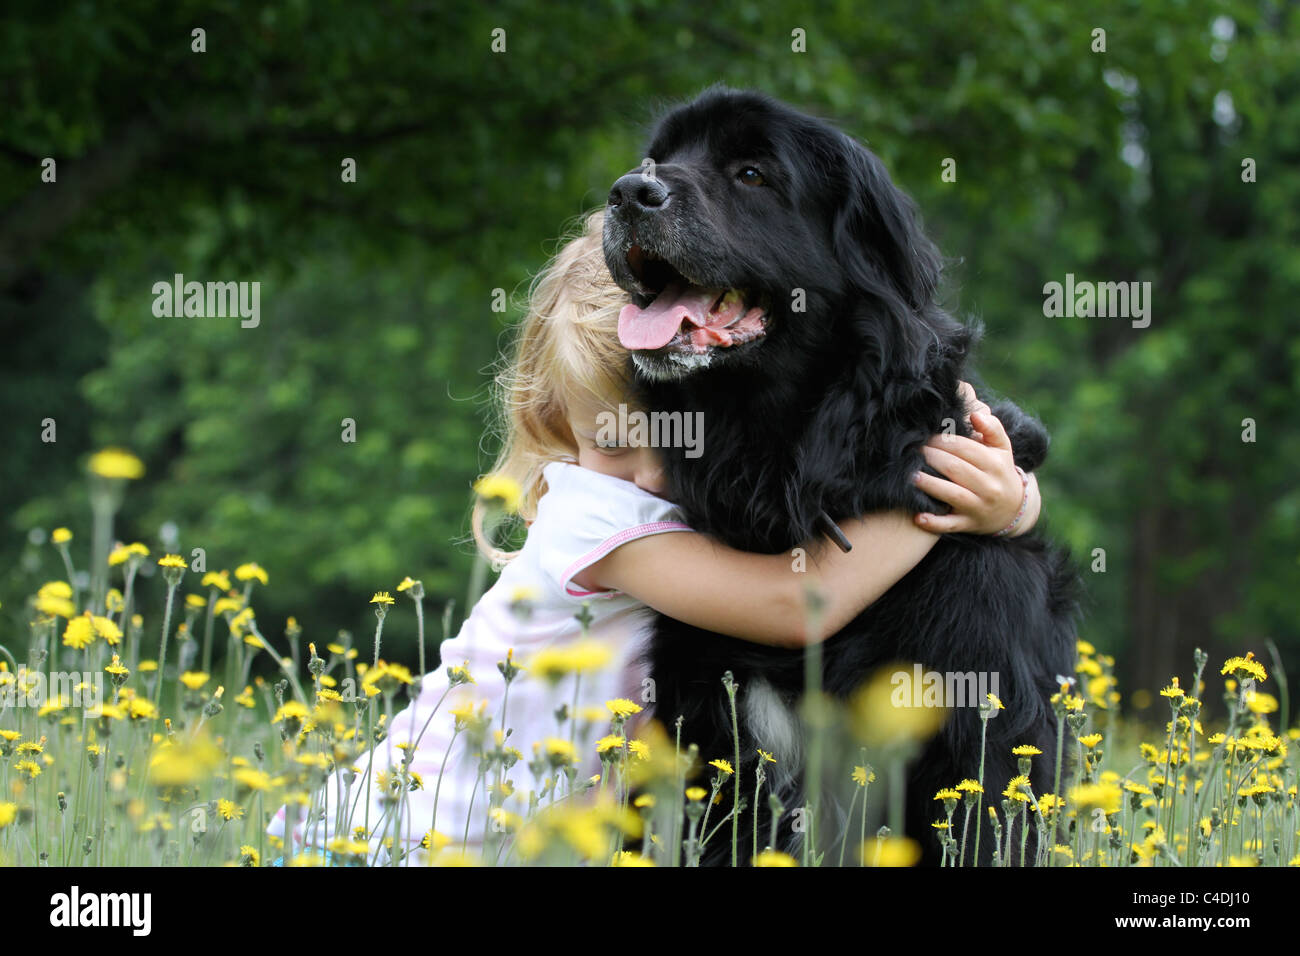 A young girl hugs her dog in a field of flowers. - Stock Image